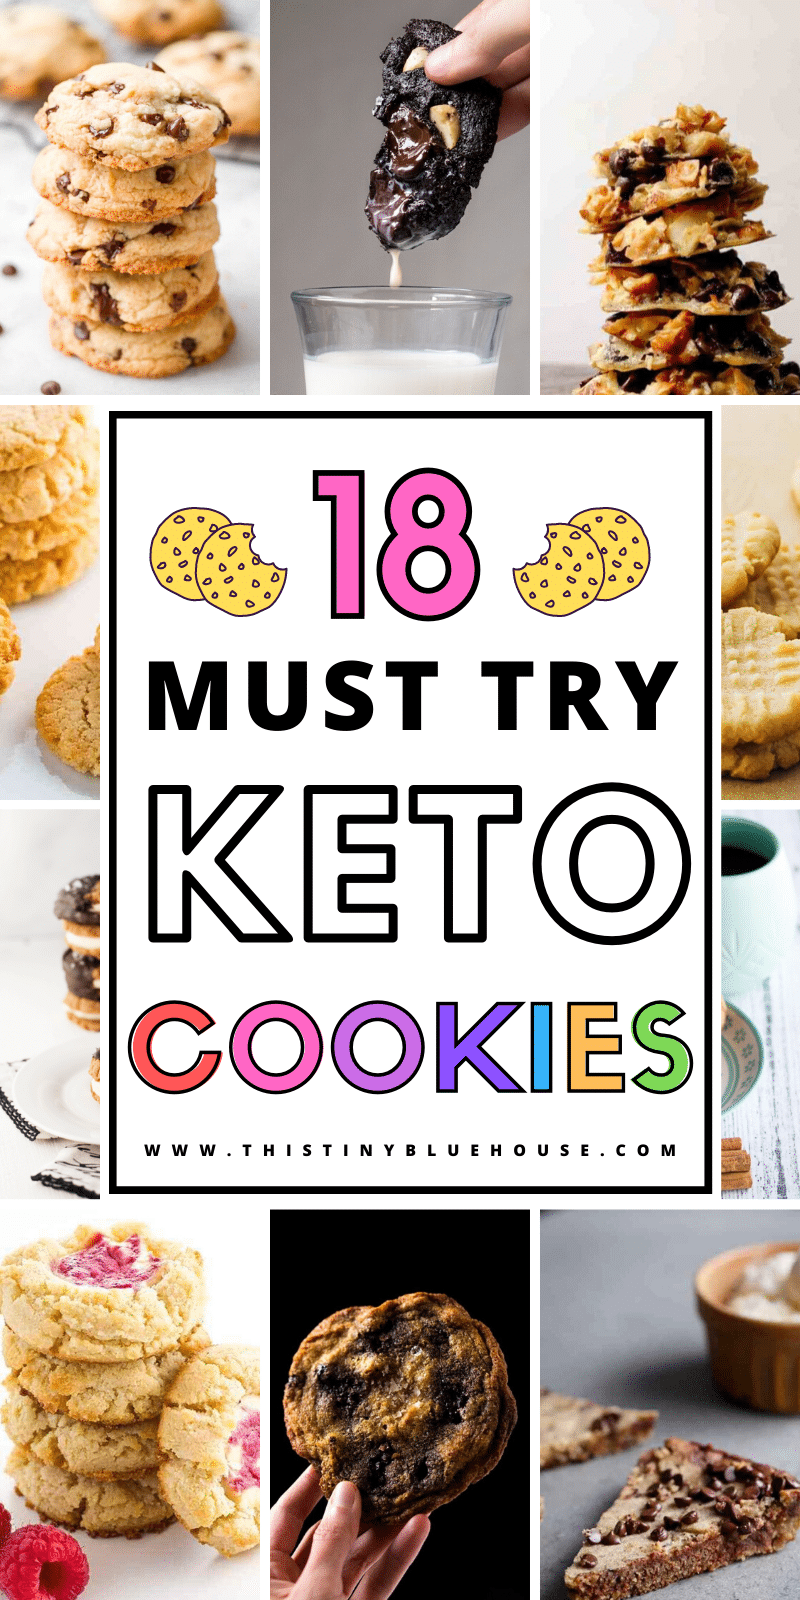 Here are 18 Keto Cookies You Gotta Try. These 18 Keto cookies are delicious, easy and guaranteed to satisfy a craving without falling off your diet. #keto #ketodiet #ketofood #ketosweets #ketocookies #ketosnacks #ketocookieseasy